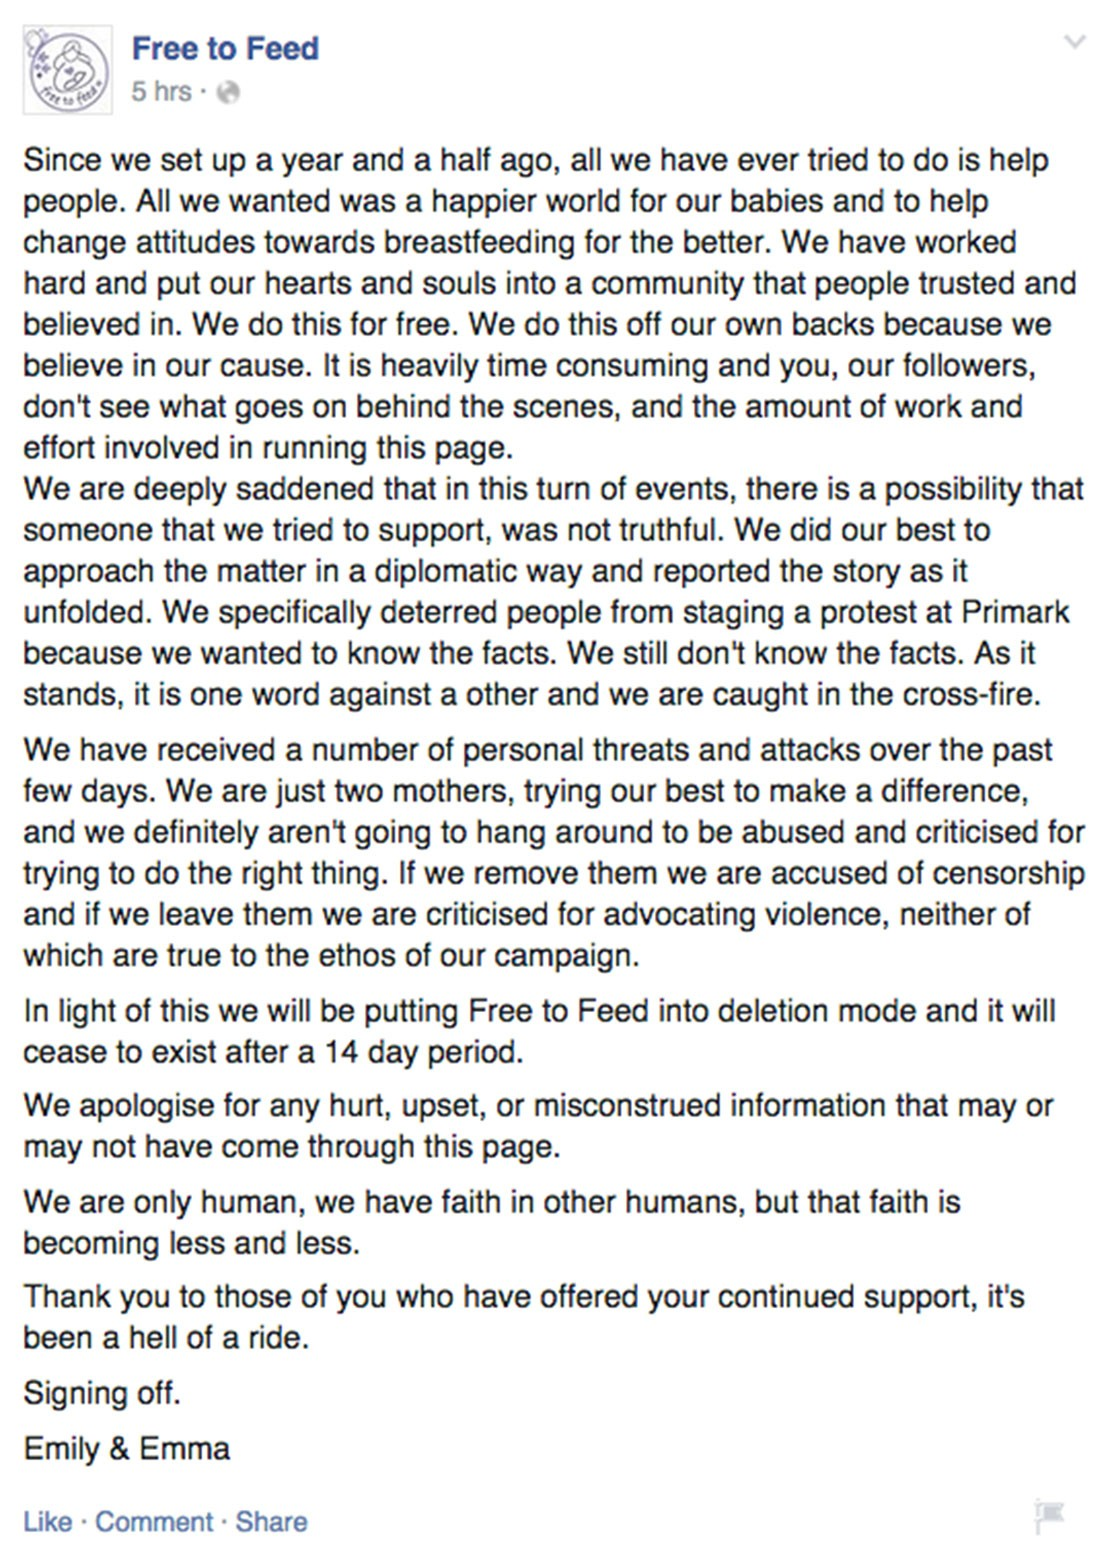 breastfeeding-facebook-page-forced-to-close-after-primark-controversy_128059